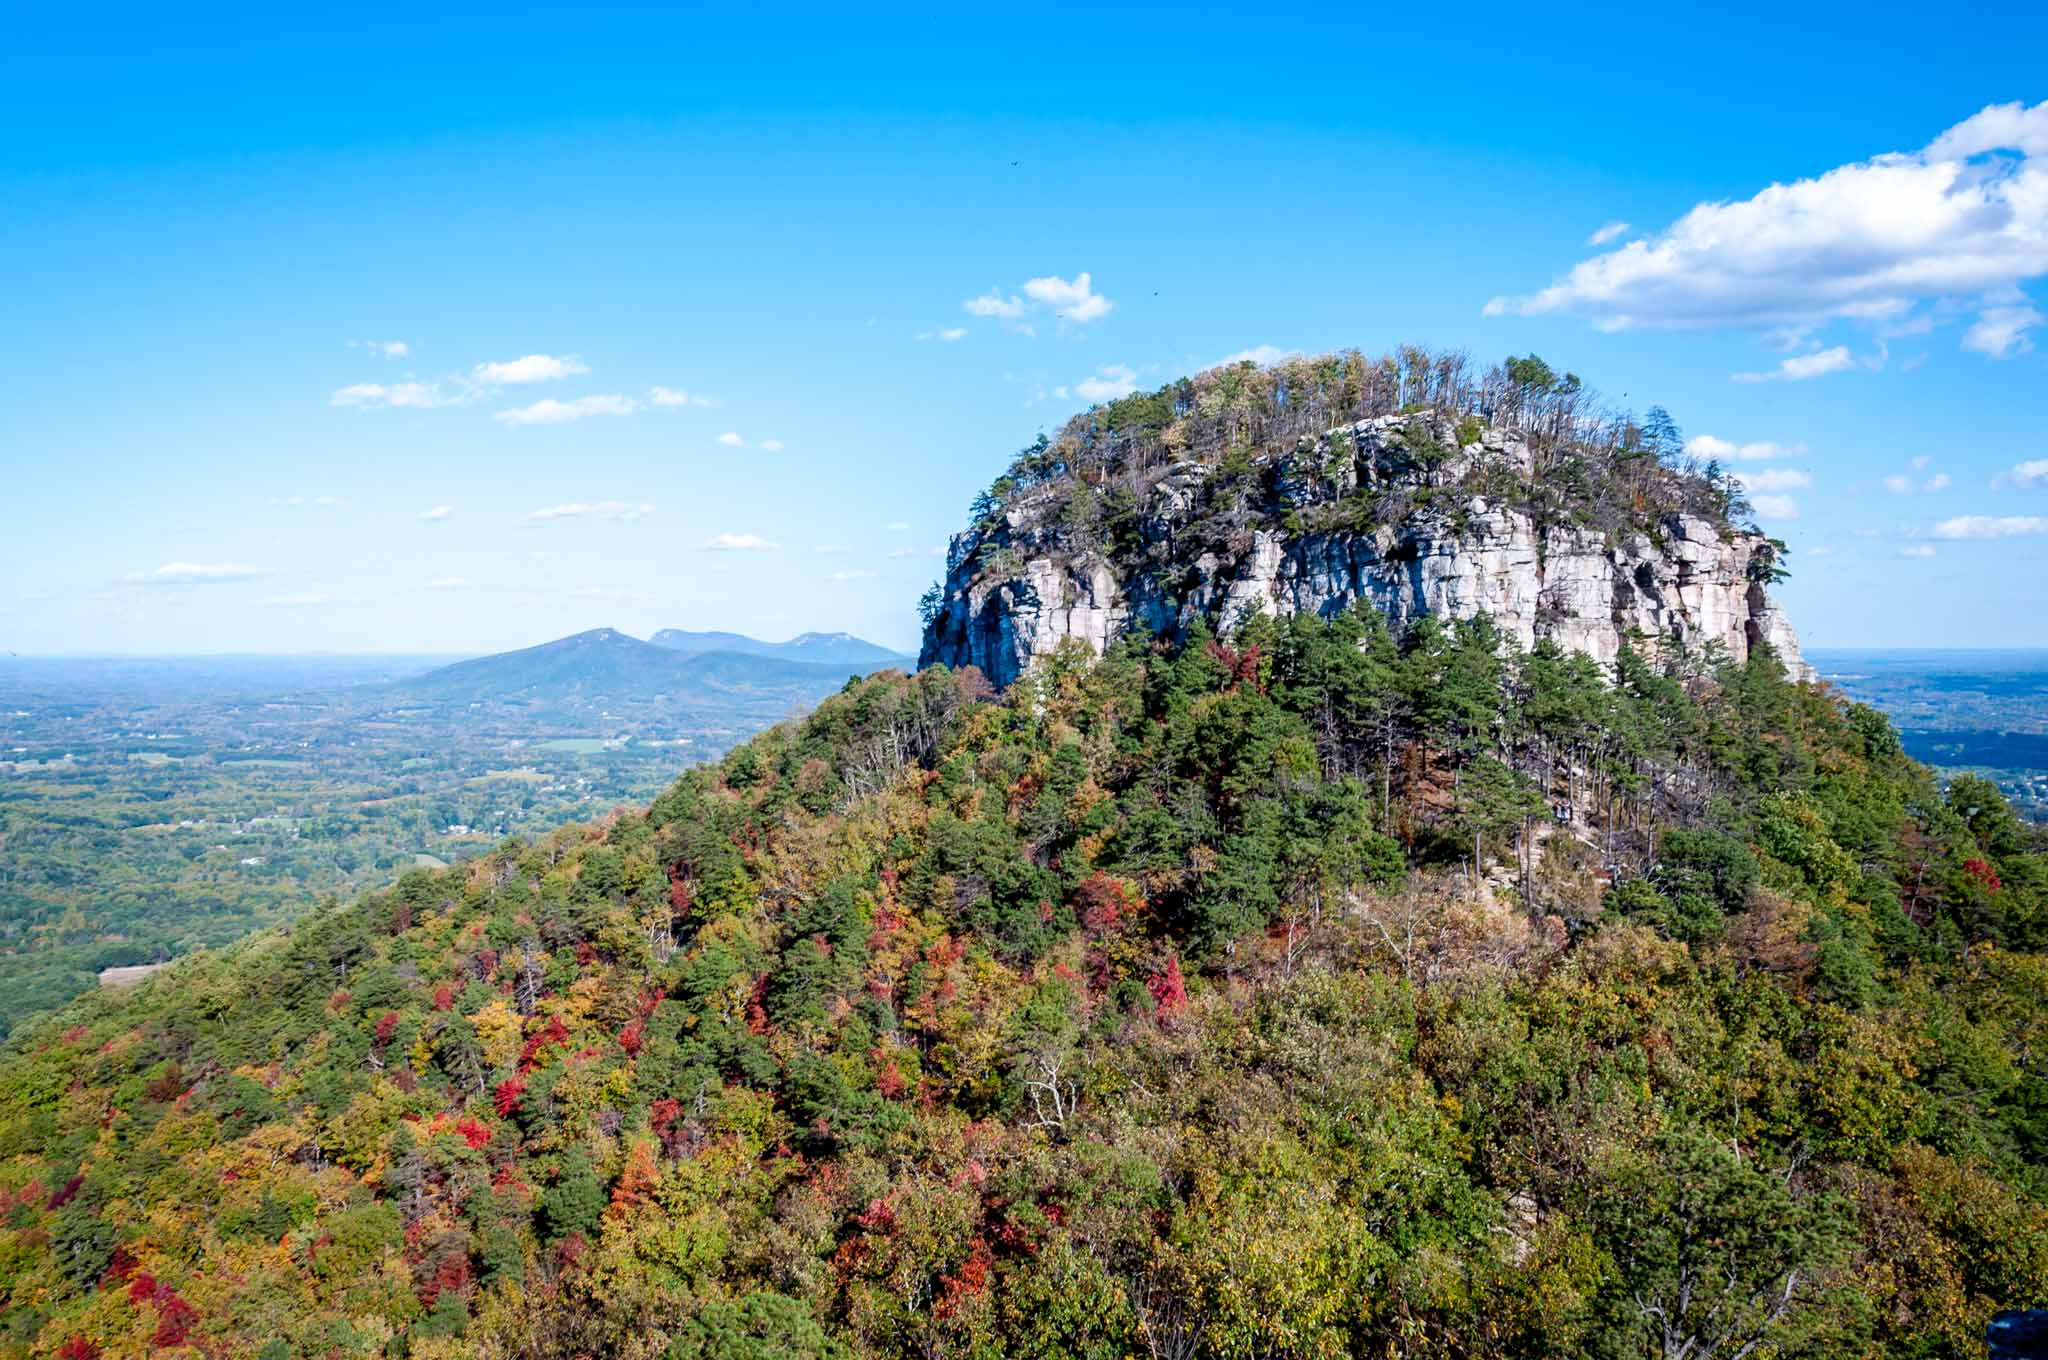 A visit to Pilot Mountain State Park is one of the fun things to do in Mount Airy North Carolina. The Big Pinnacle can be seen for miles around.